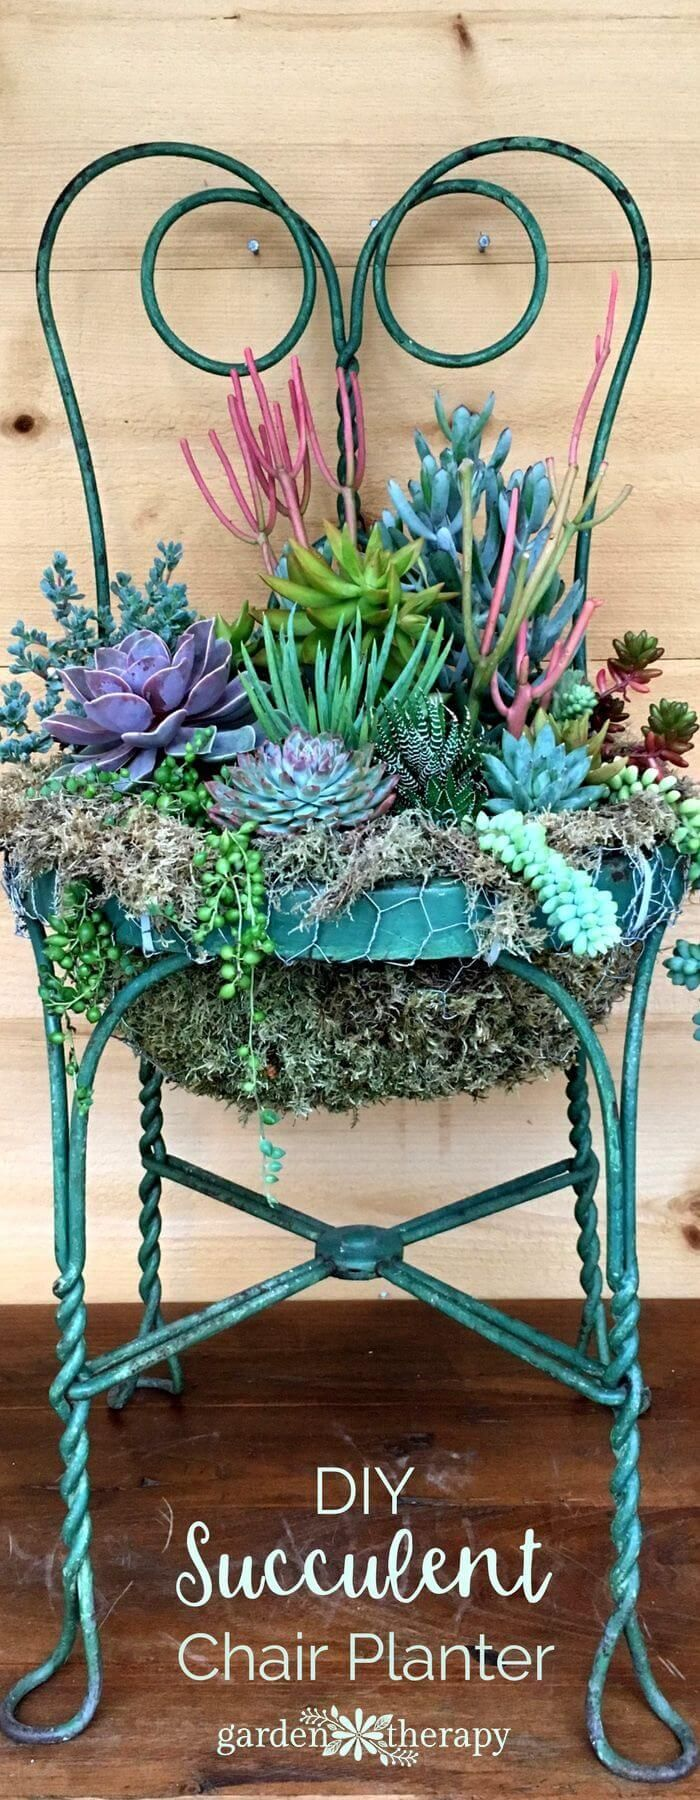 A Chair Planter with Brightly Colored Flowers